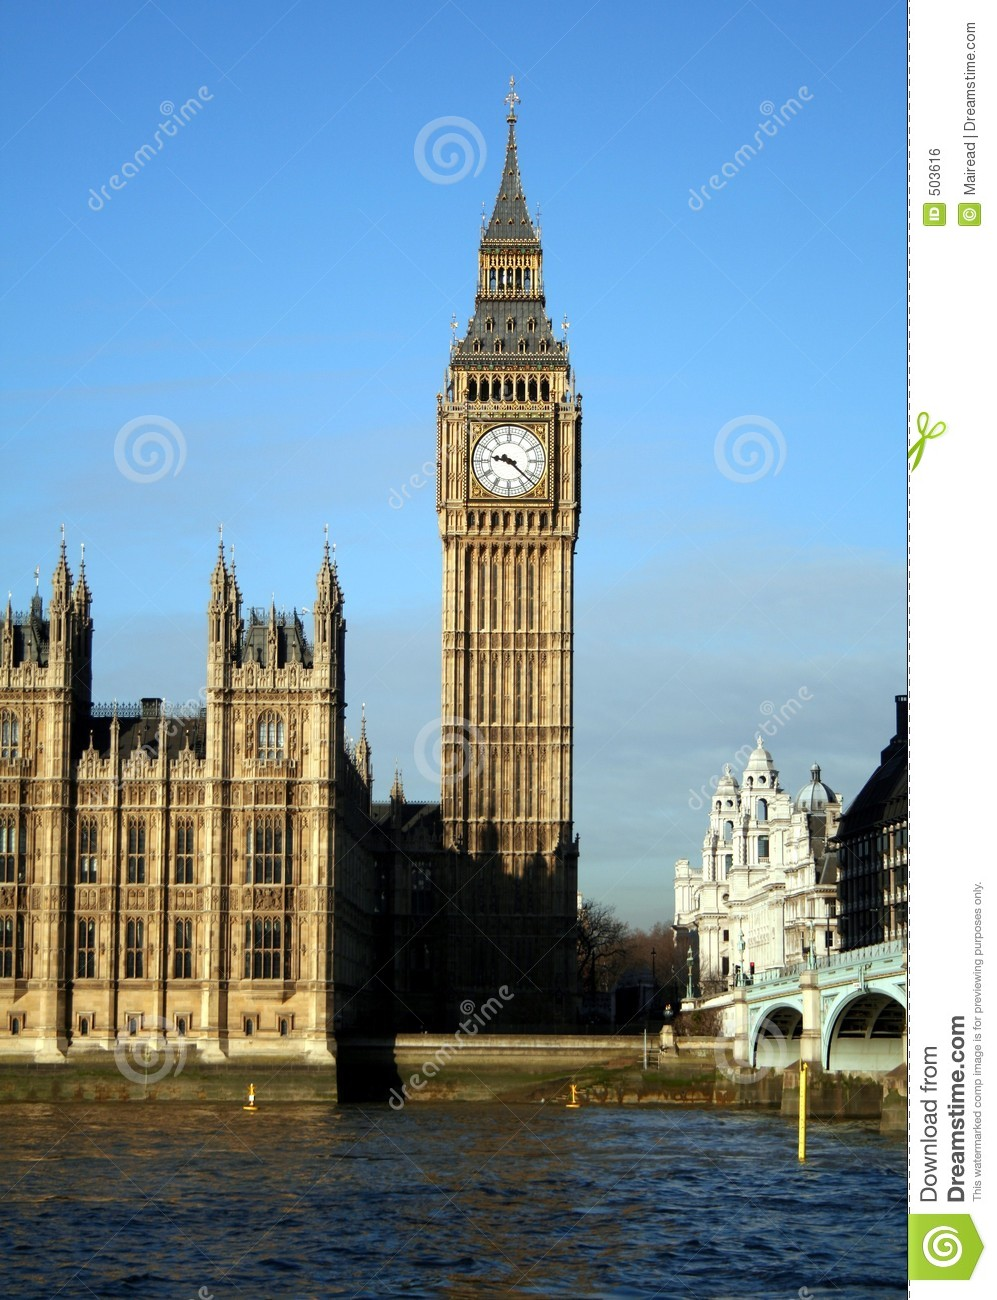 big ben stock photo image of thames scene sunny. Black Bedroom Furniture Sets. Home Design Ideas